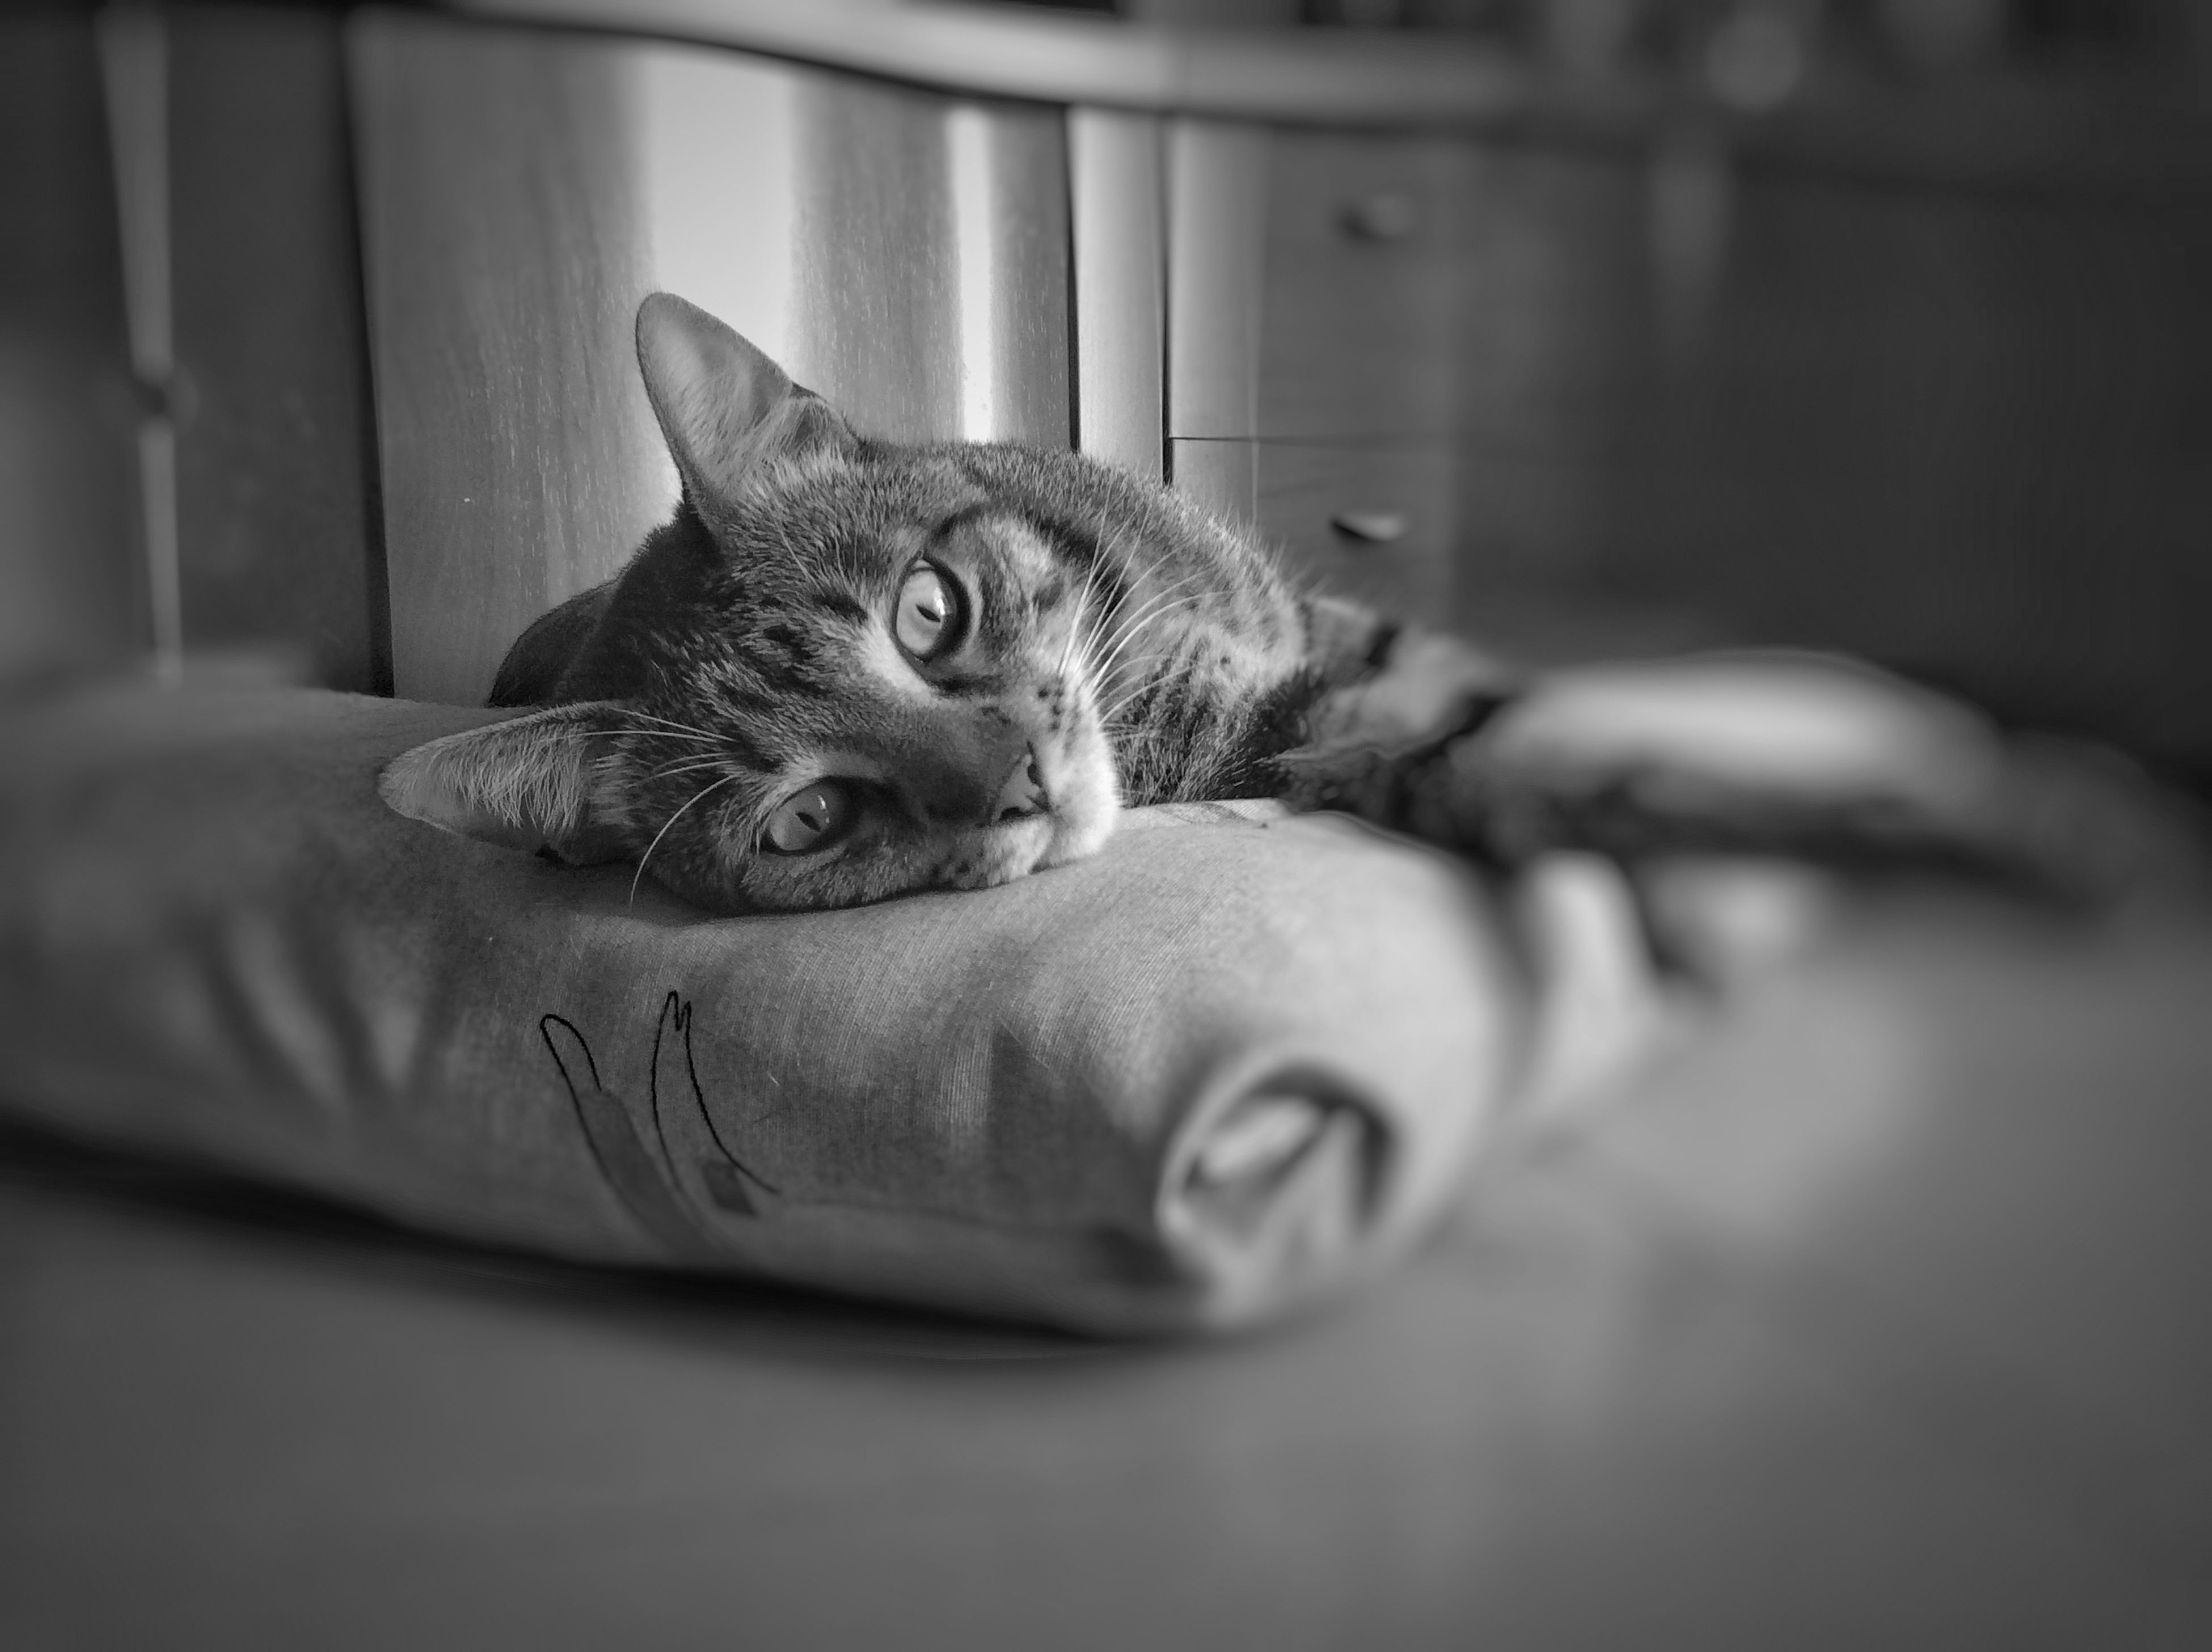 pets, domestic cat, domestic animals, cat, one animal, mammal, animal themes, feline, indoors, whisker, relaxation, portrait, looking at camera, kitten, home interior, selective focus, lying down, cute, close-up, focus on foreground